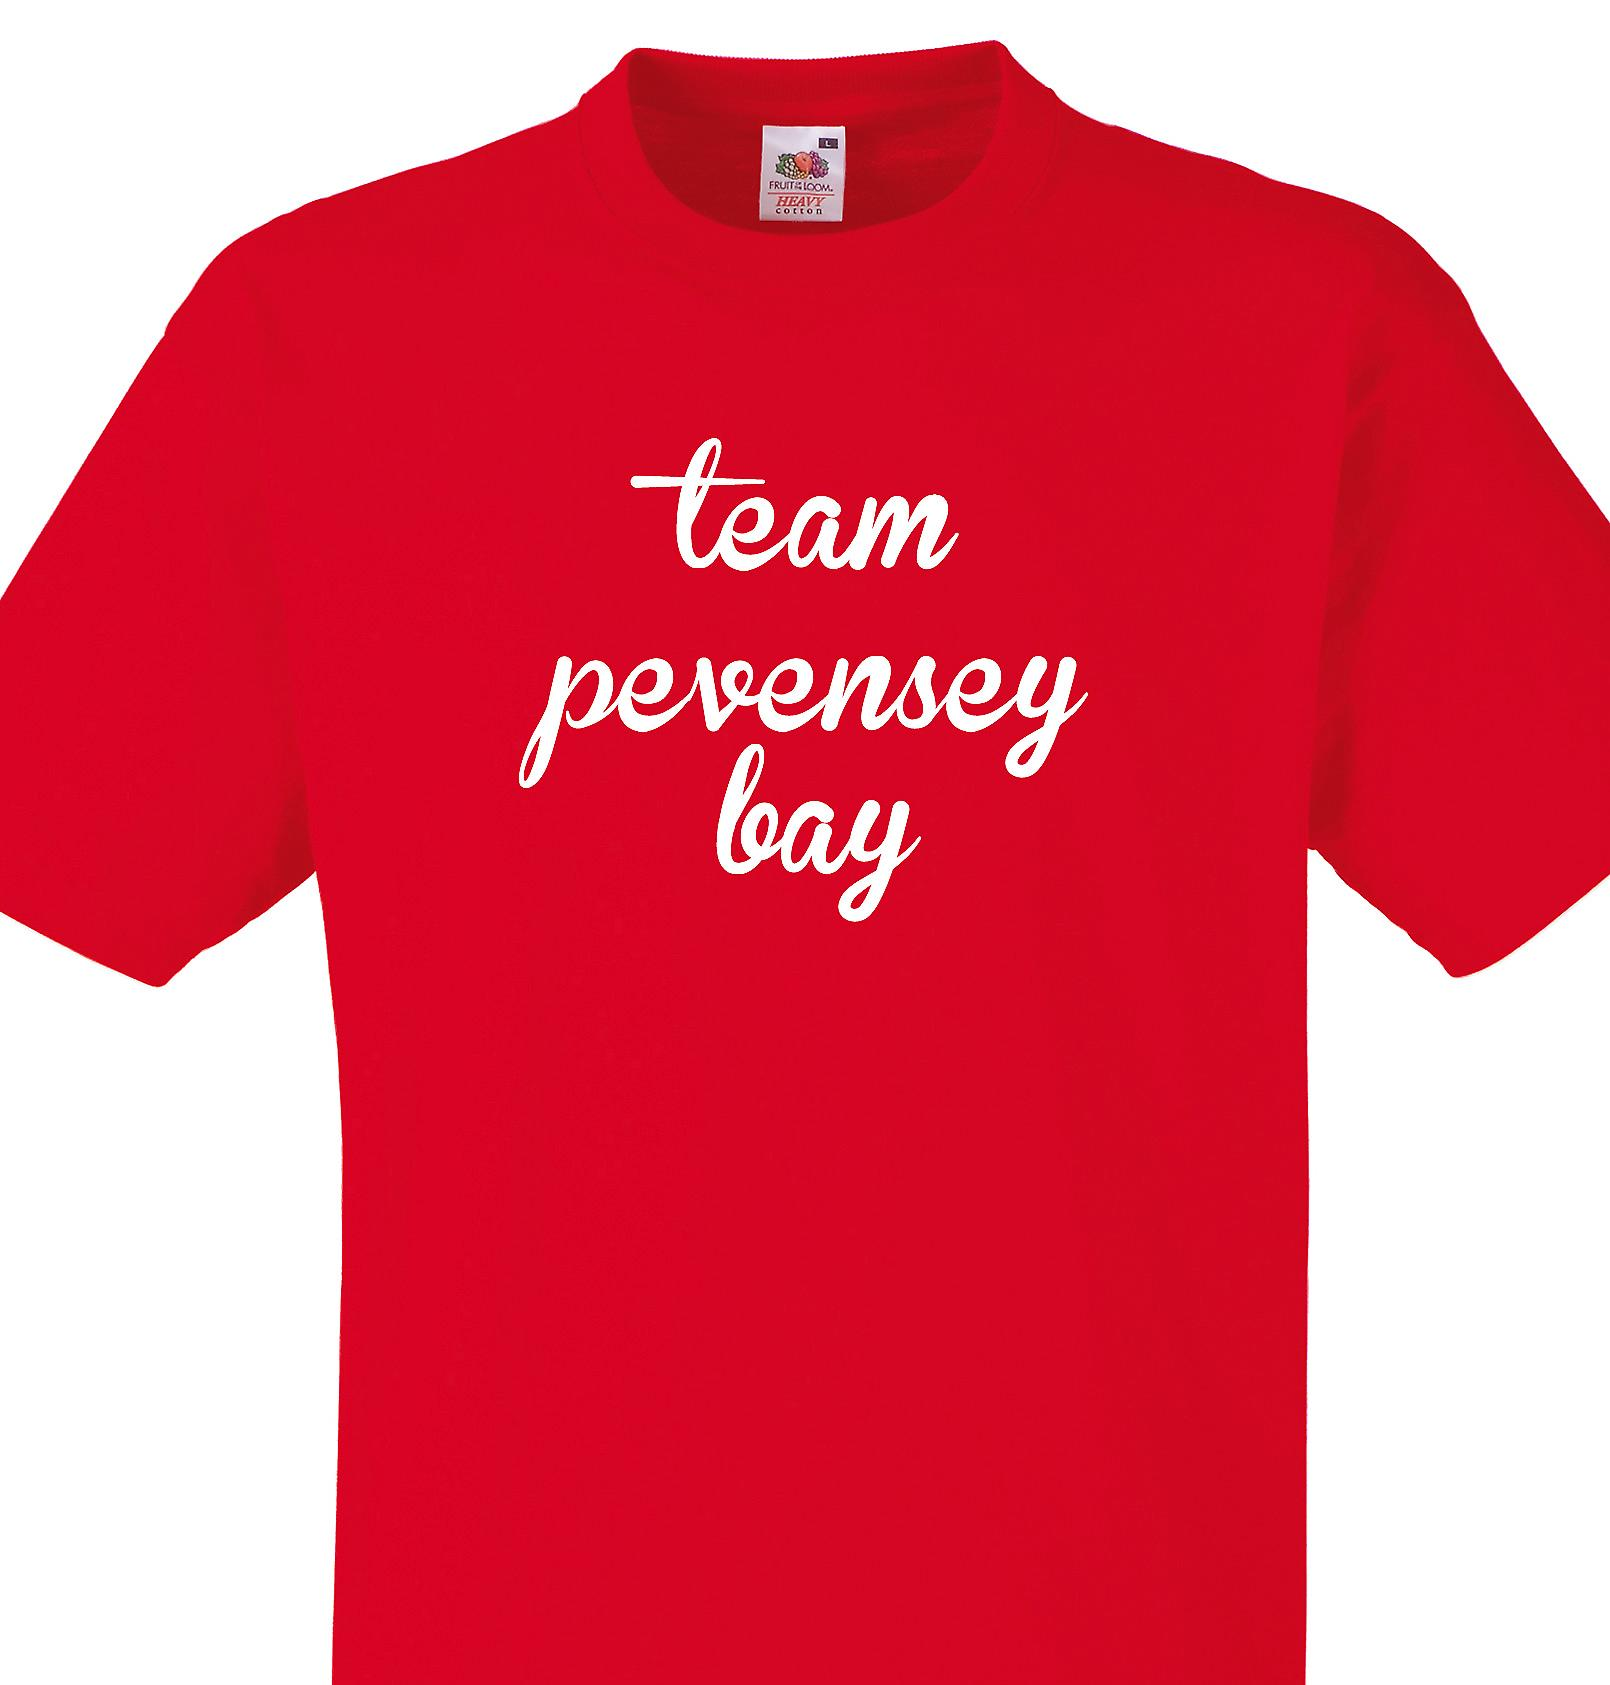 Team Pevensey bay Red T shirt